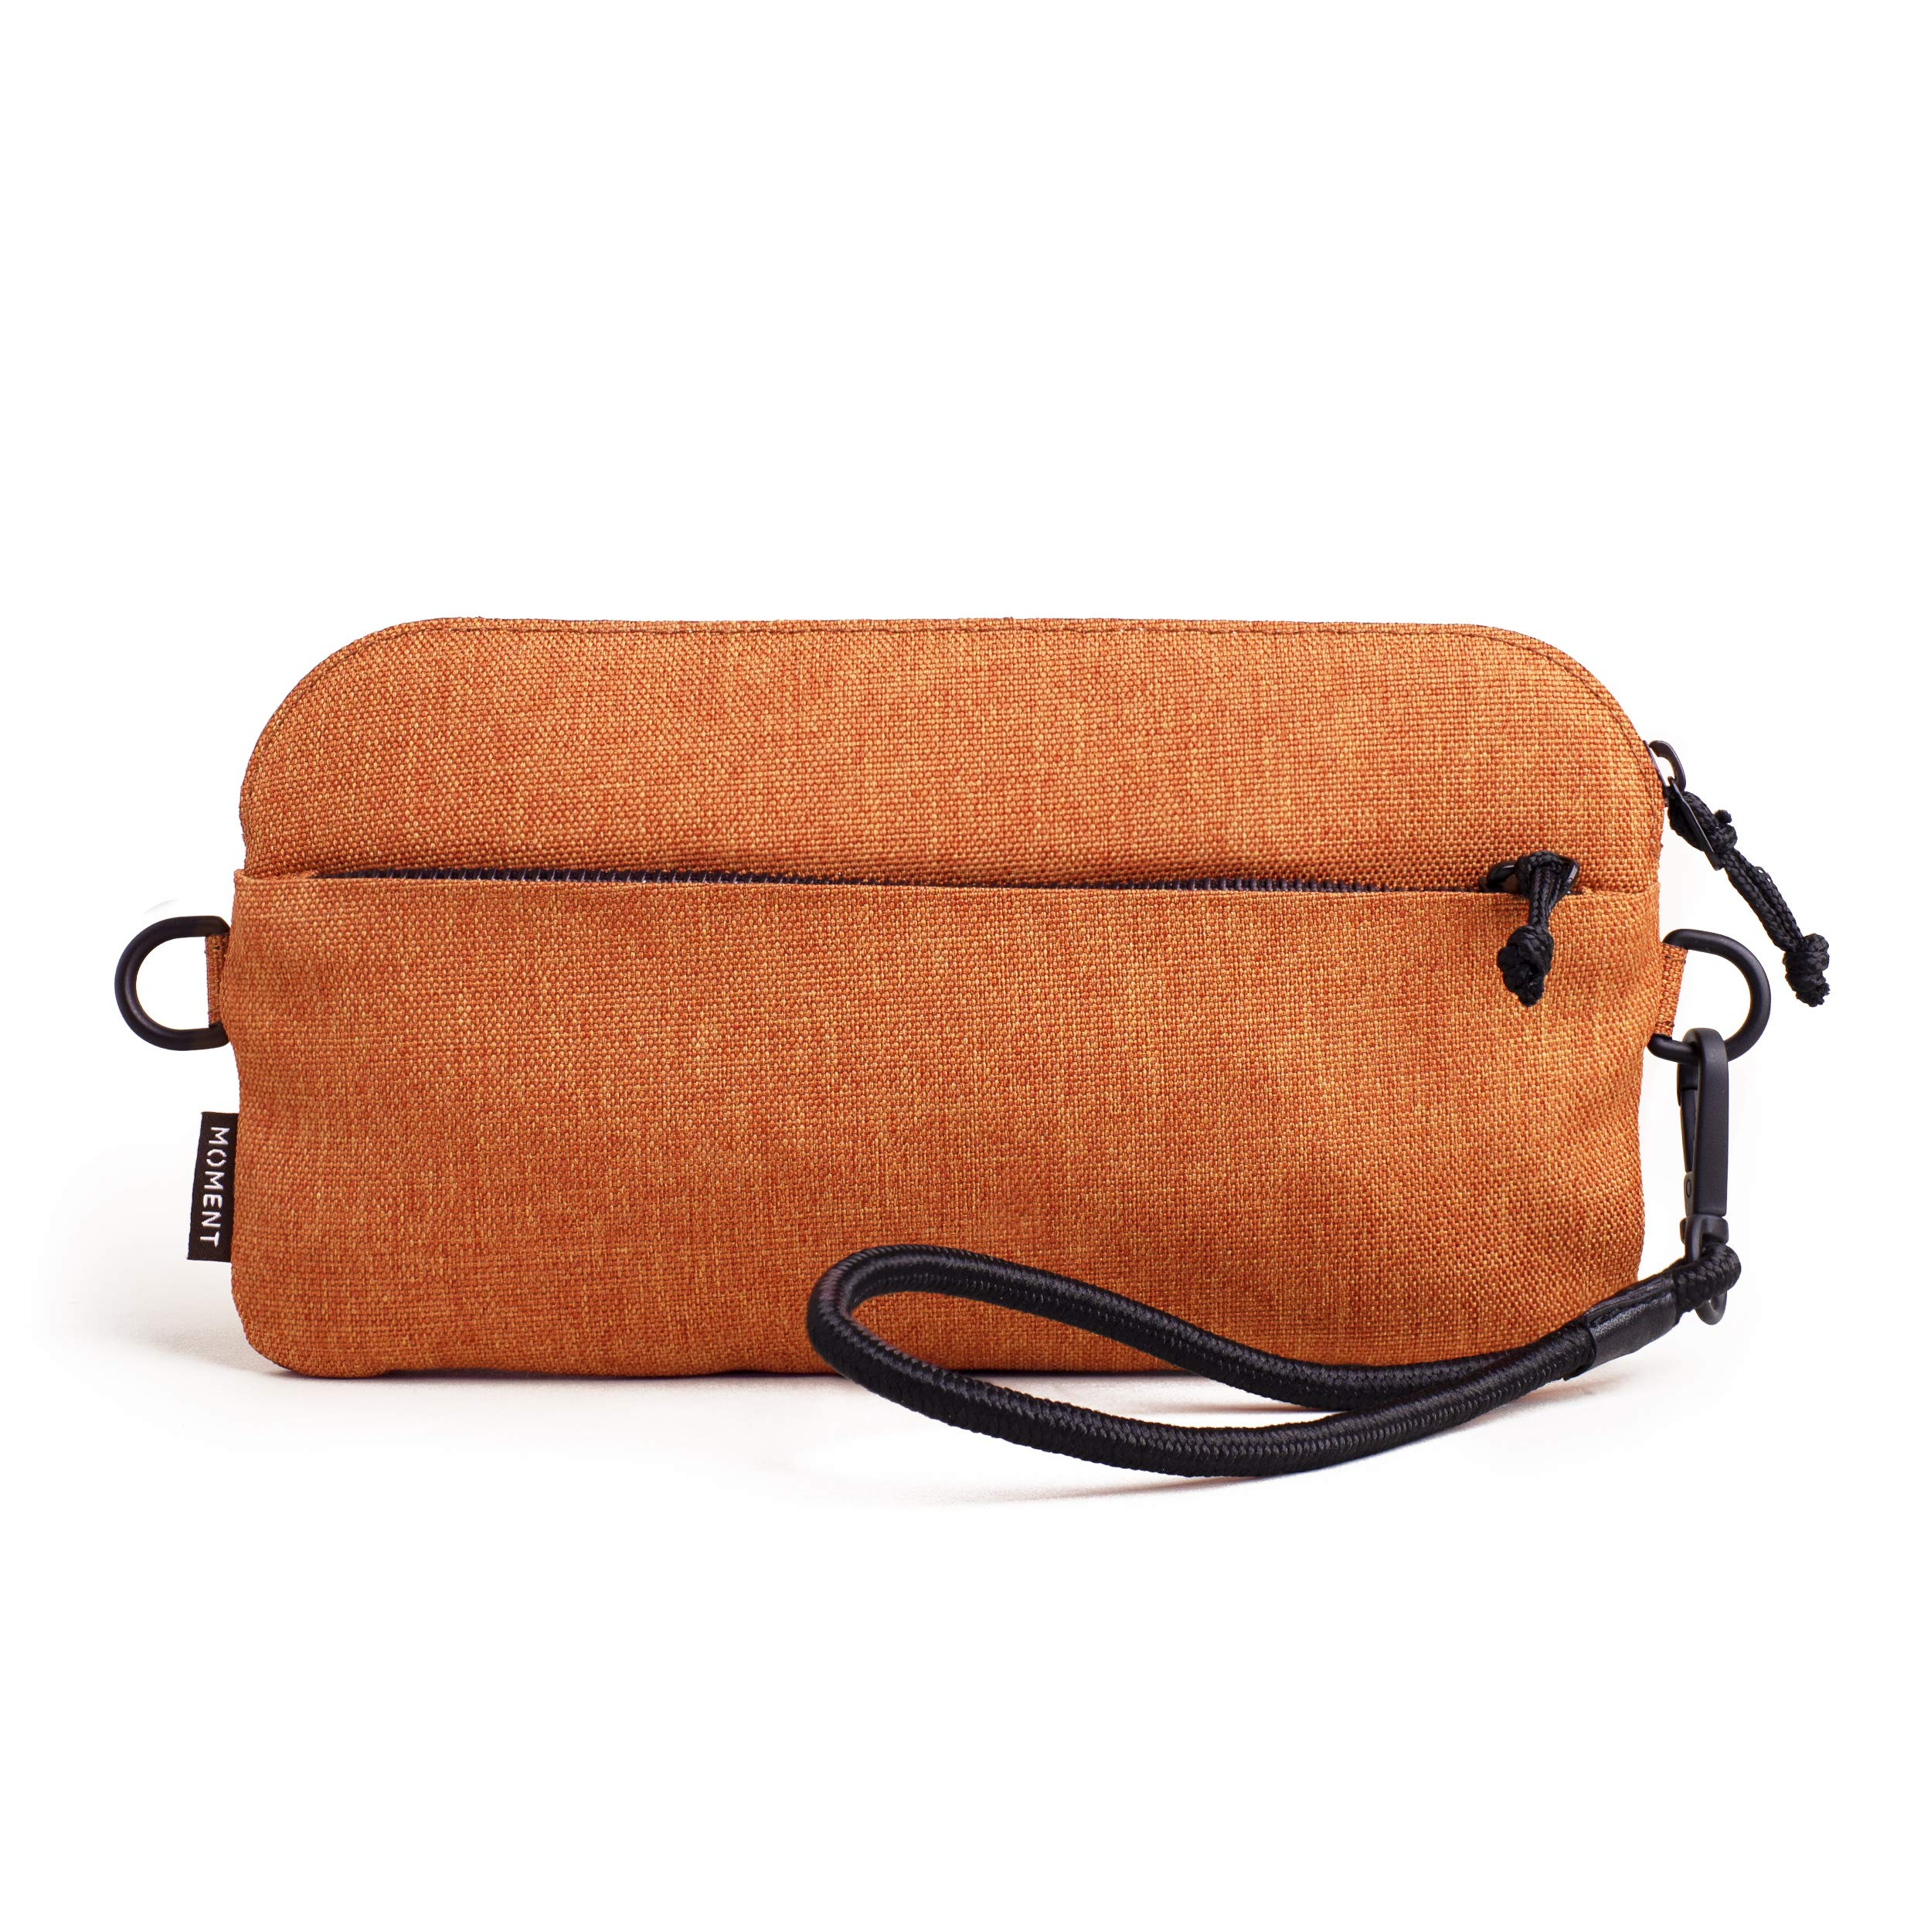 Moment - Crossbody Wallet in Terracotta - Carry Your iPhone, Wallet, and Lenses. by Moment